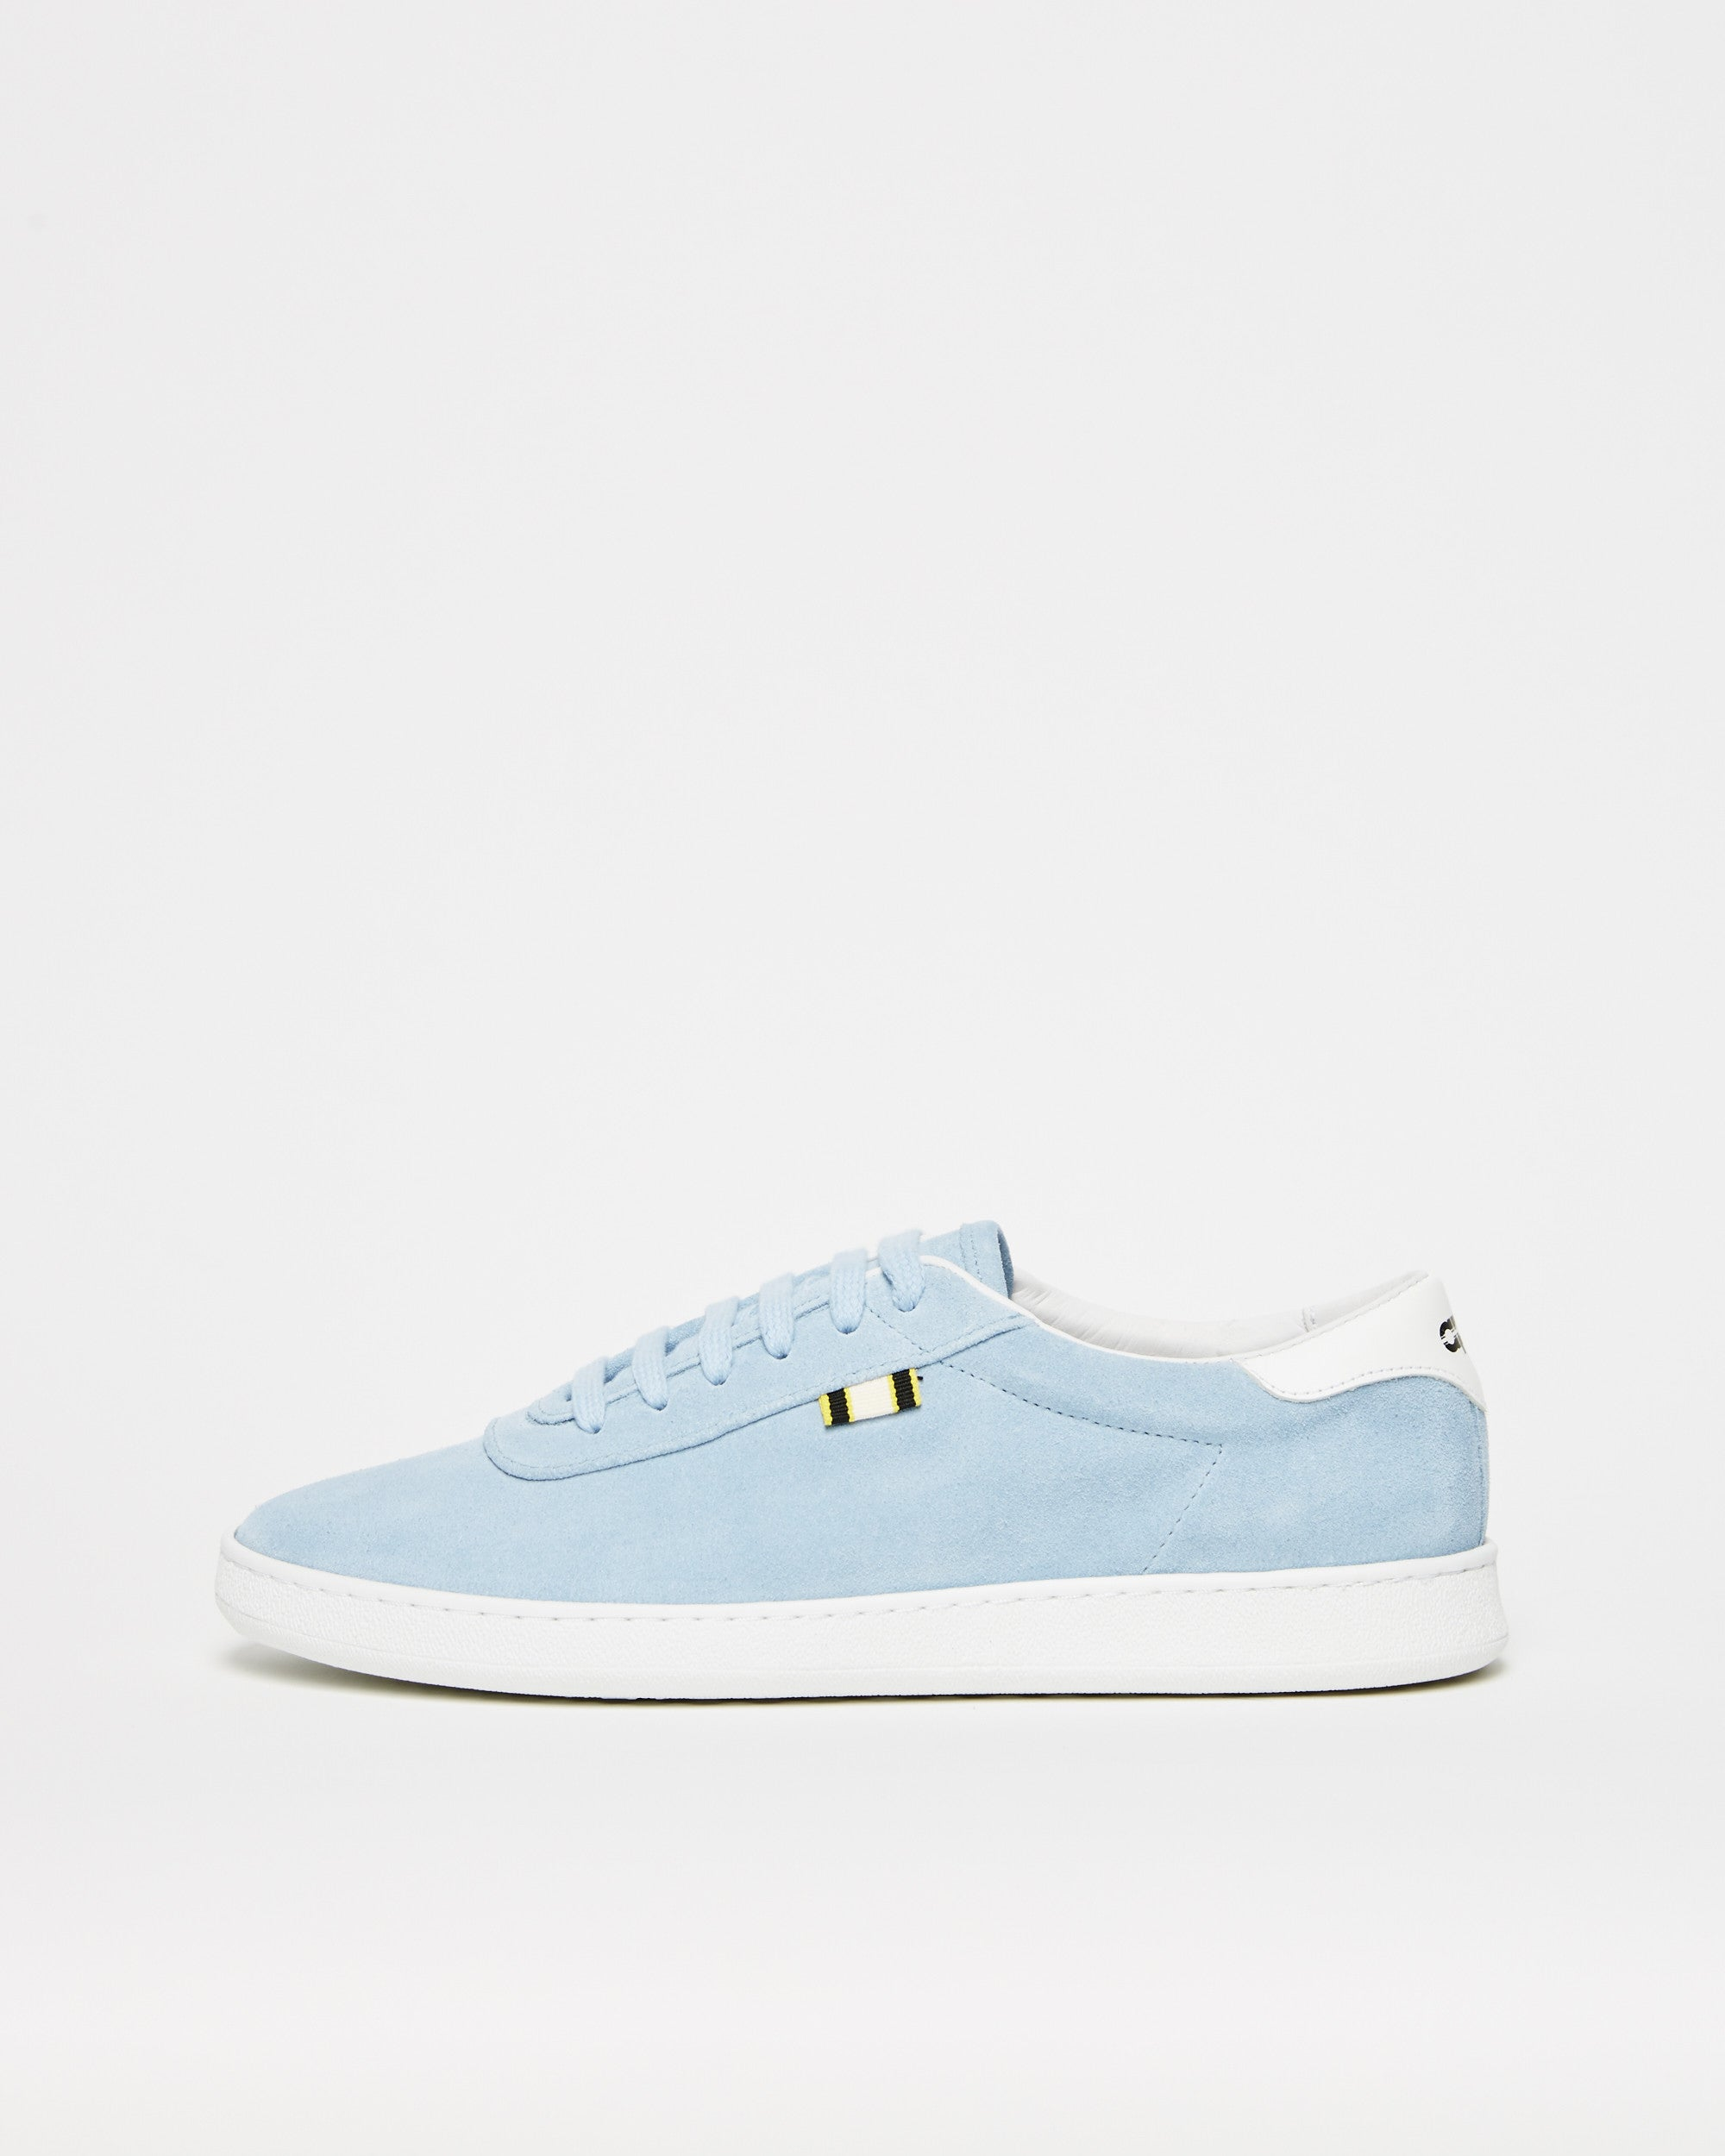 APR002 - Suede - Powder Blue